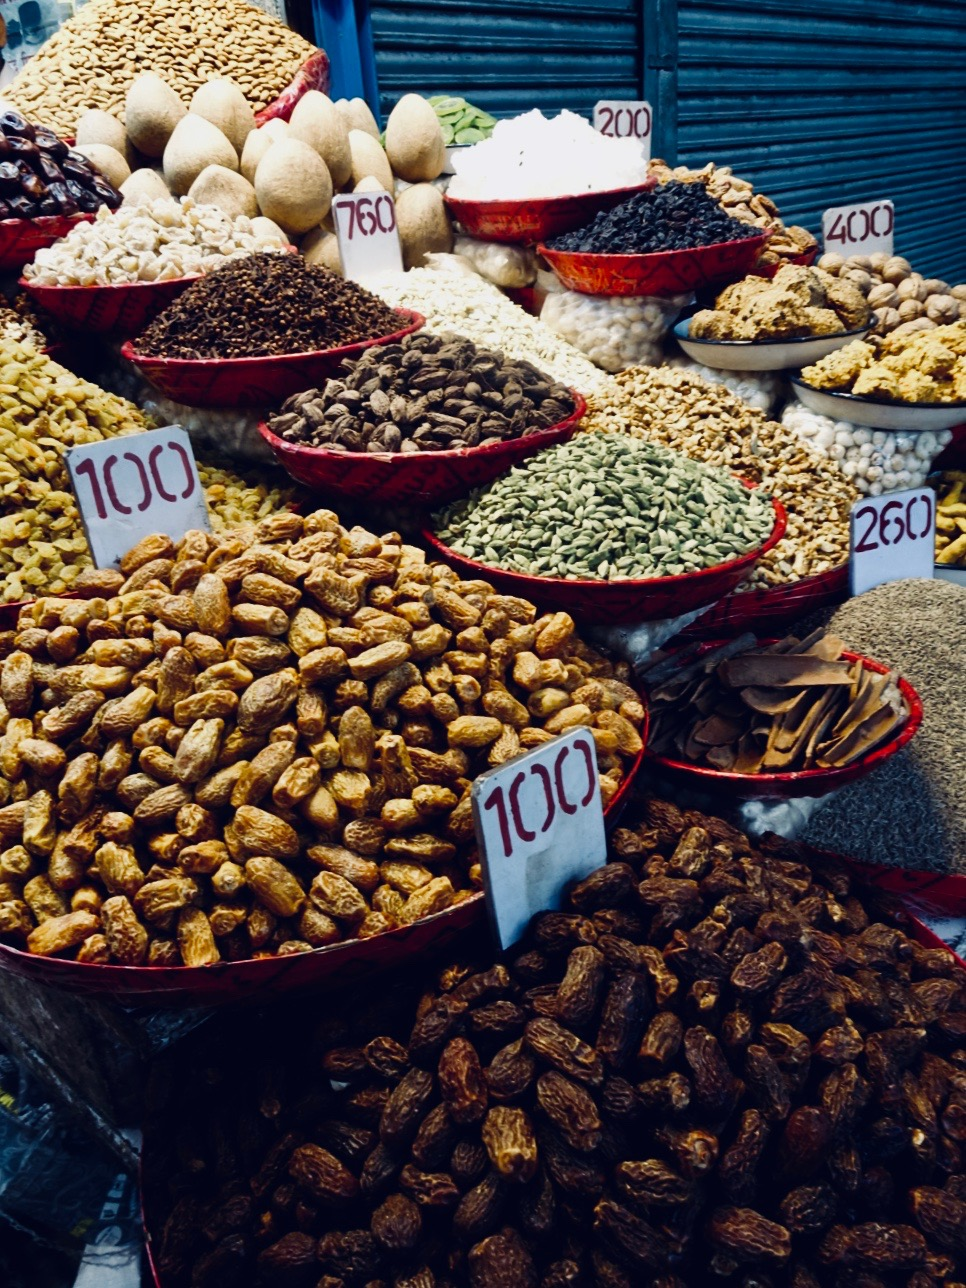 I ate all the Karim's food too fast to take any photos… so here are some bowls of dried fruit and nuts in the spice market.